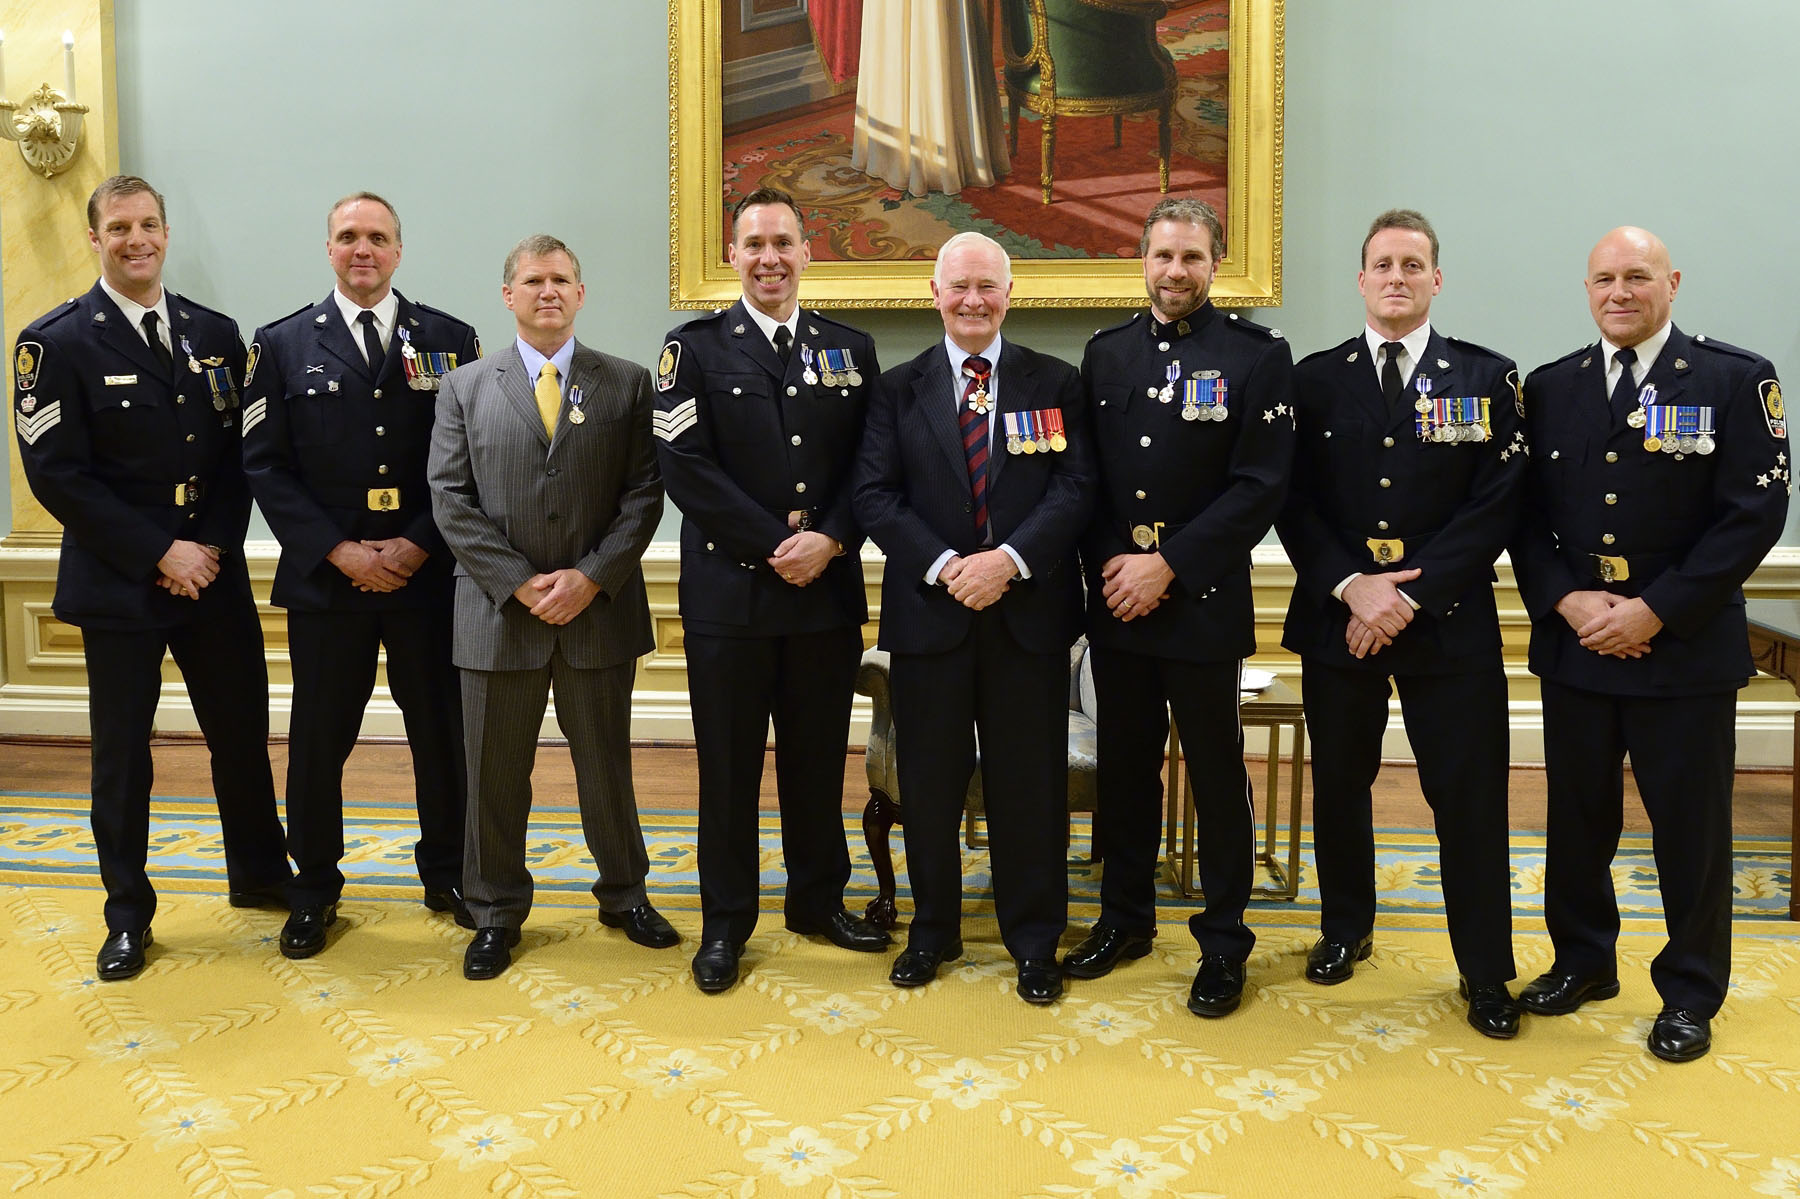 Constable Alan Dennis Arsenault, M.S.M., Constable Tobin Hinton, M.O.M., M.S.M., Constable Lenny Hollingsworth, M.S.M., Constable David W. Kolb, M.S.M., Constable Walter Maxwell McKay, M.S.M., Constable Mark Warren Steinkampf, M.S.M., Constable Dale Weidman, M.S.M.